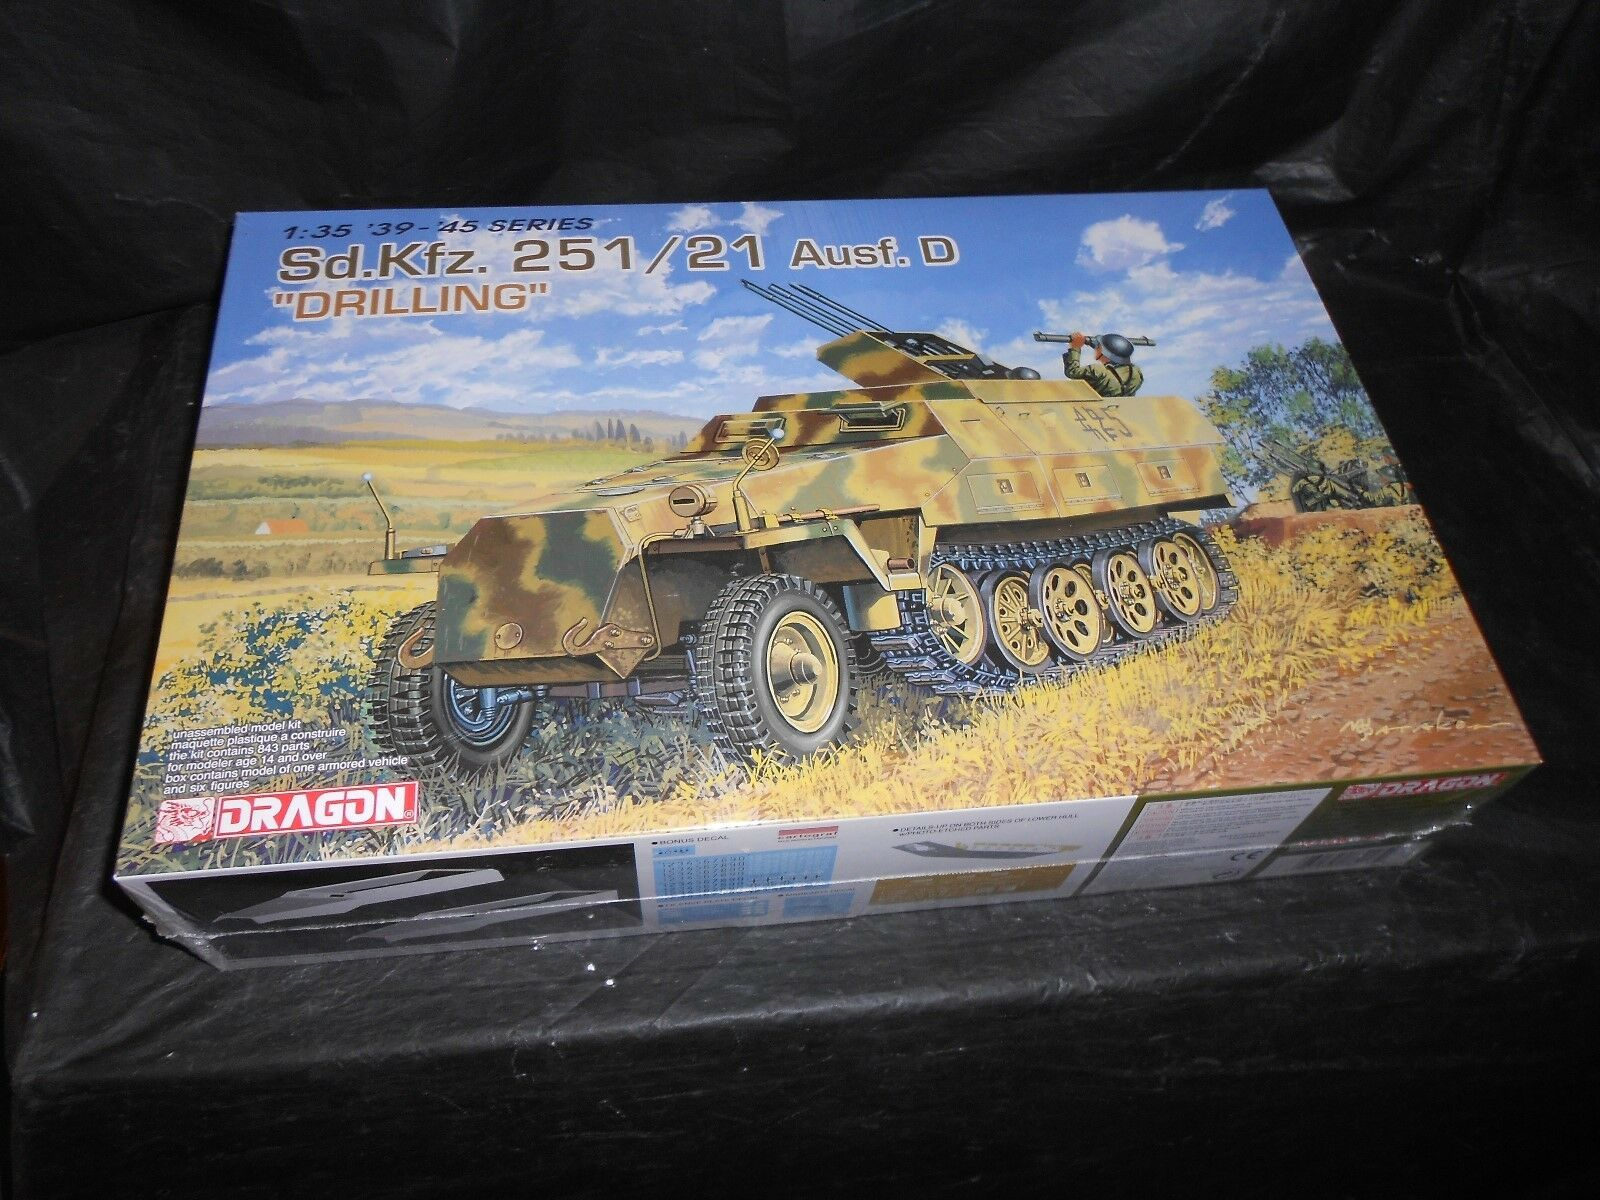 DRAGON 6217, 1 35 SD.KFZ. 251 21 AUSF.D  DRILLING  PLASTIC MODEL KIT